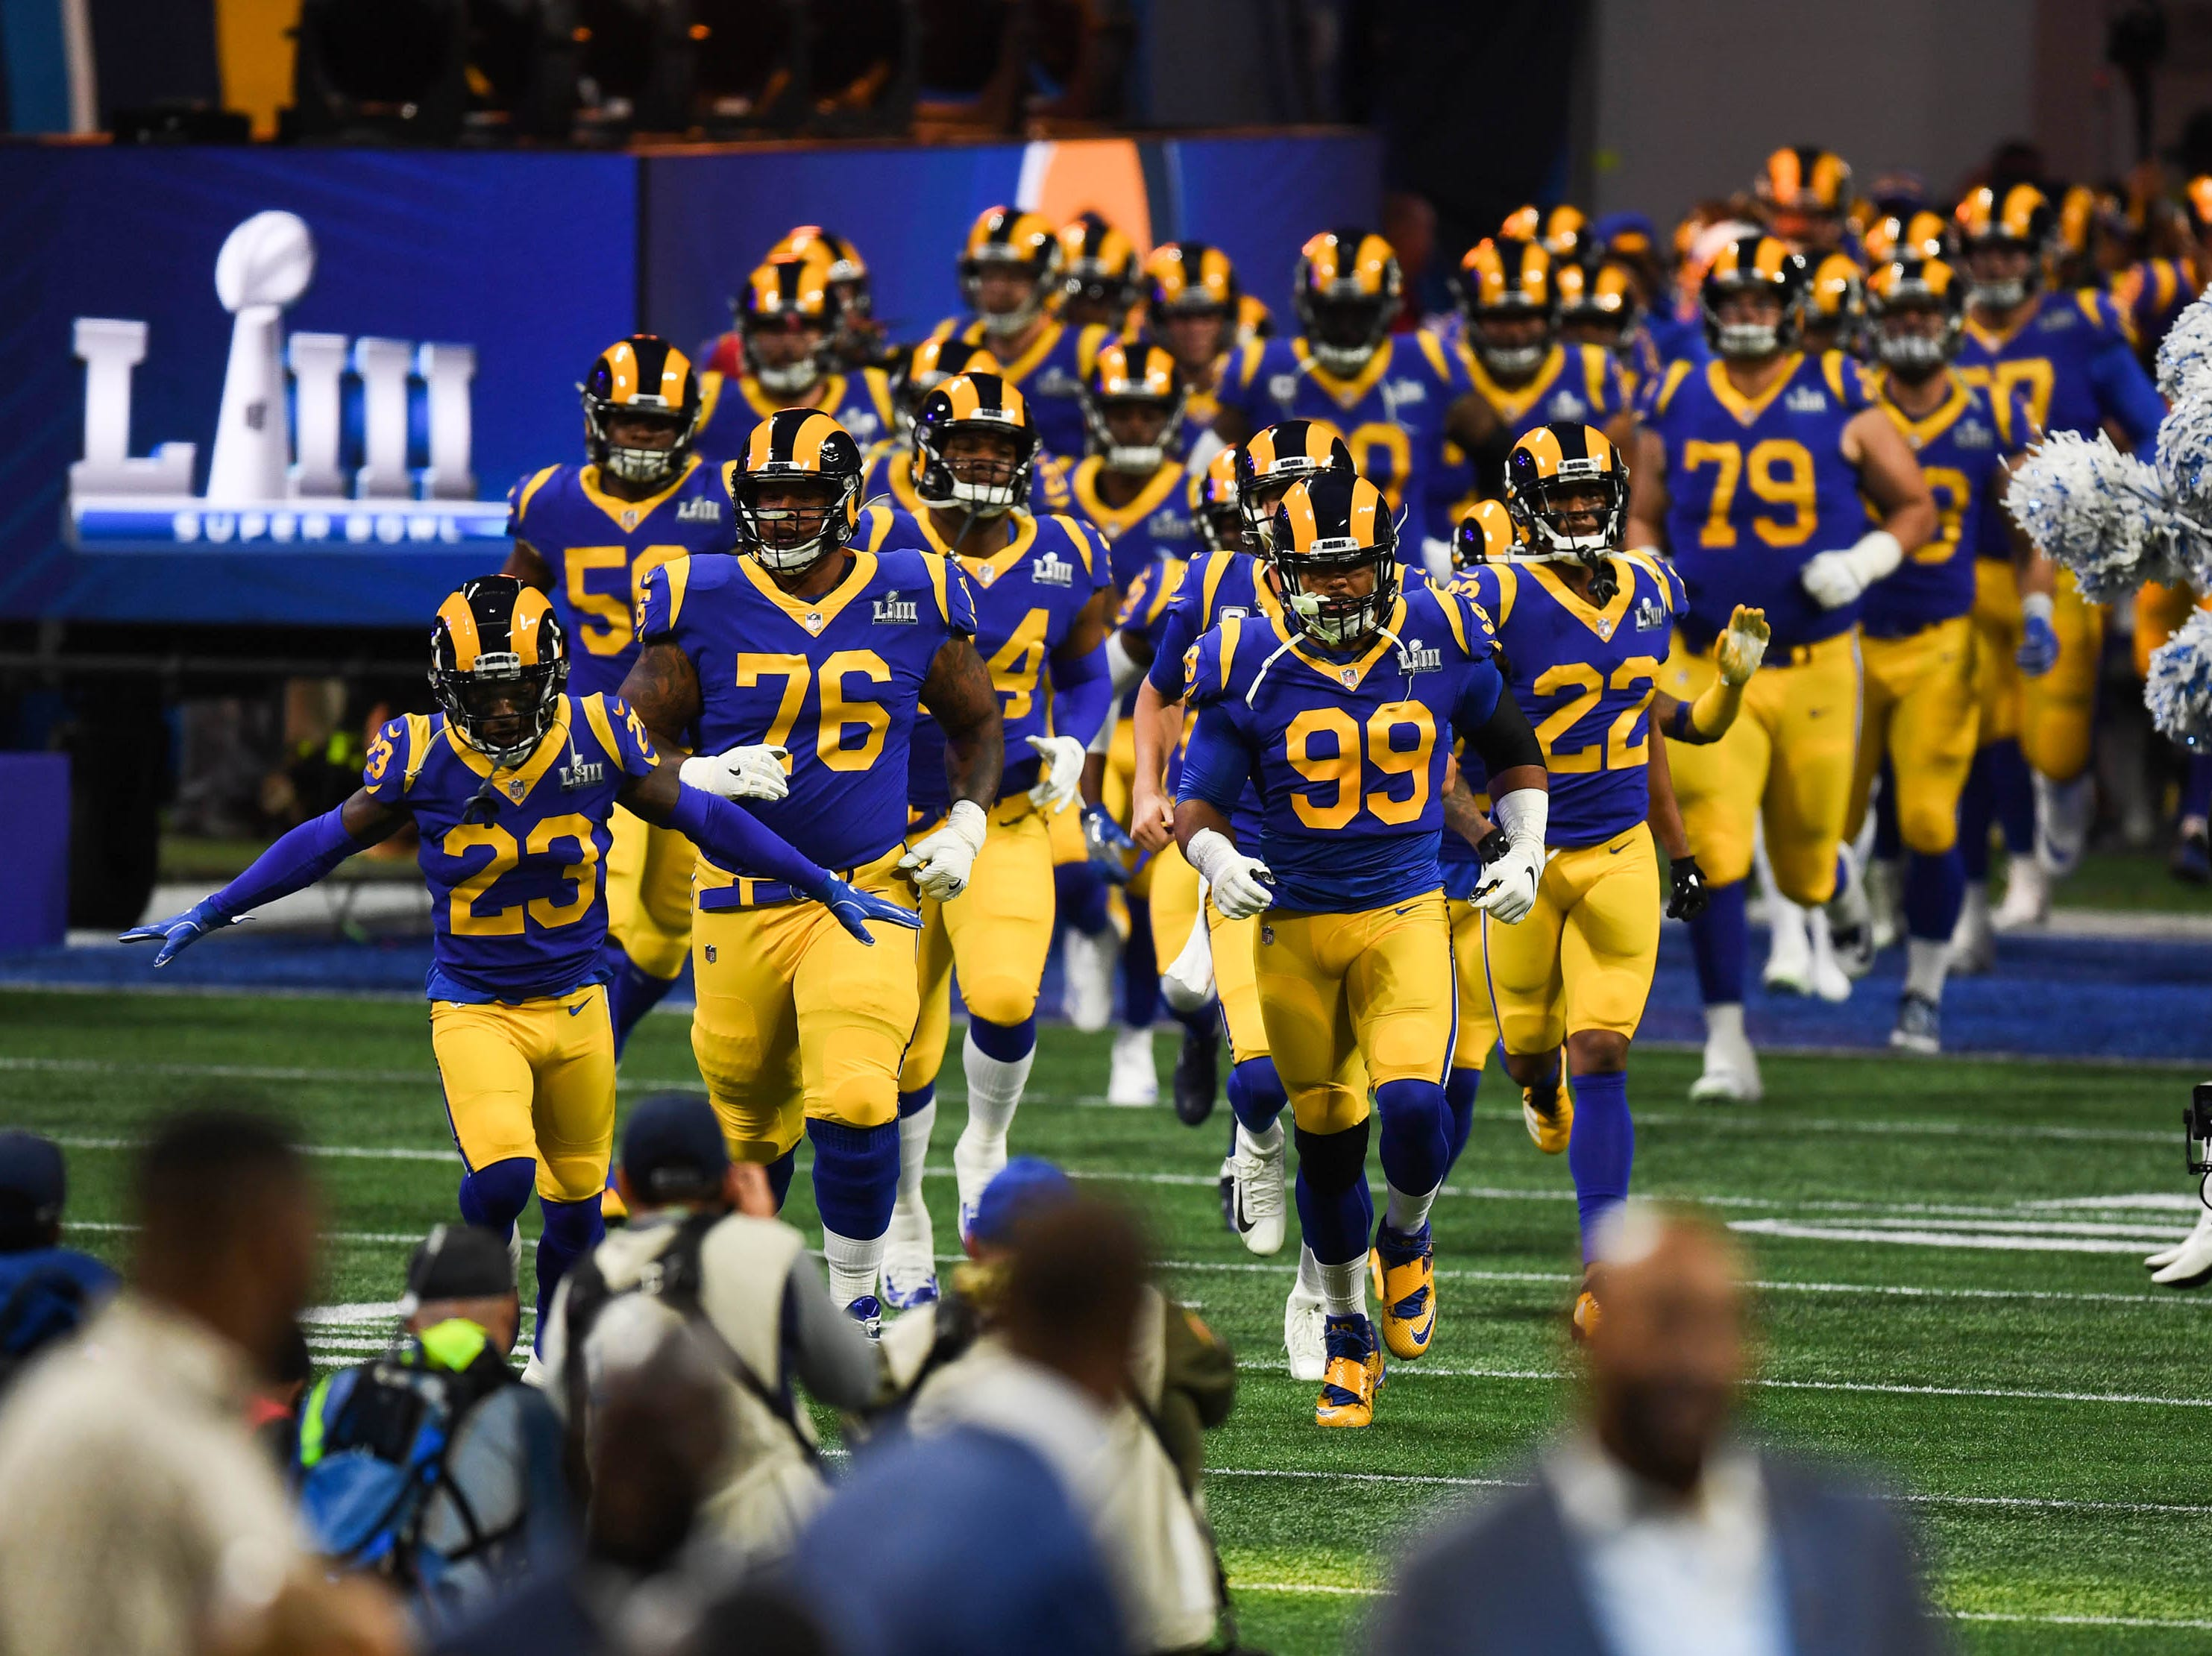 Los Angeles Rams players take the field for Super Bowl LIII against the New England Patriots at Mercedes-Benz Stadium.